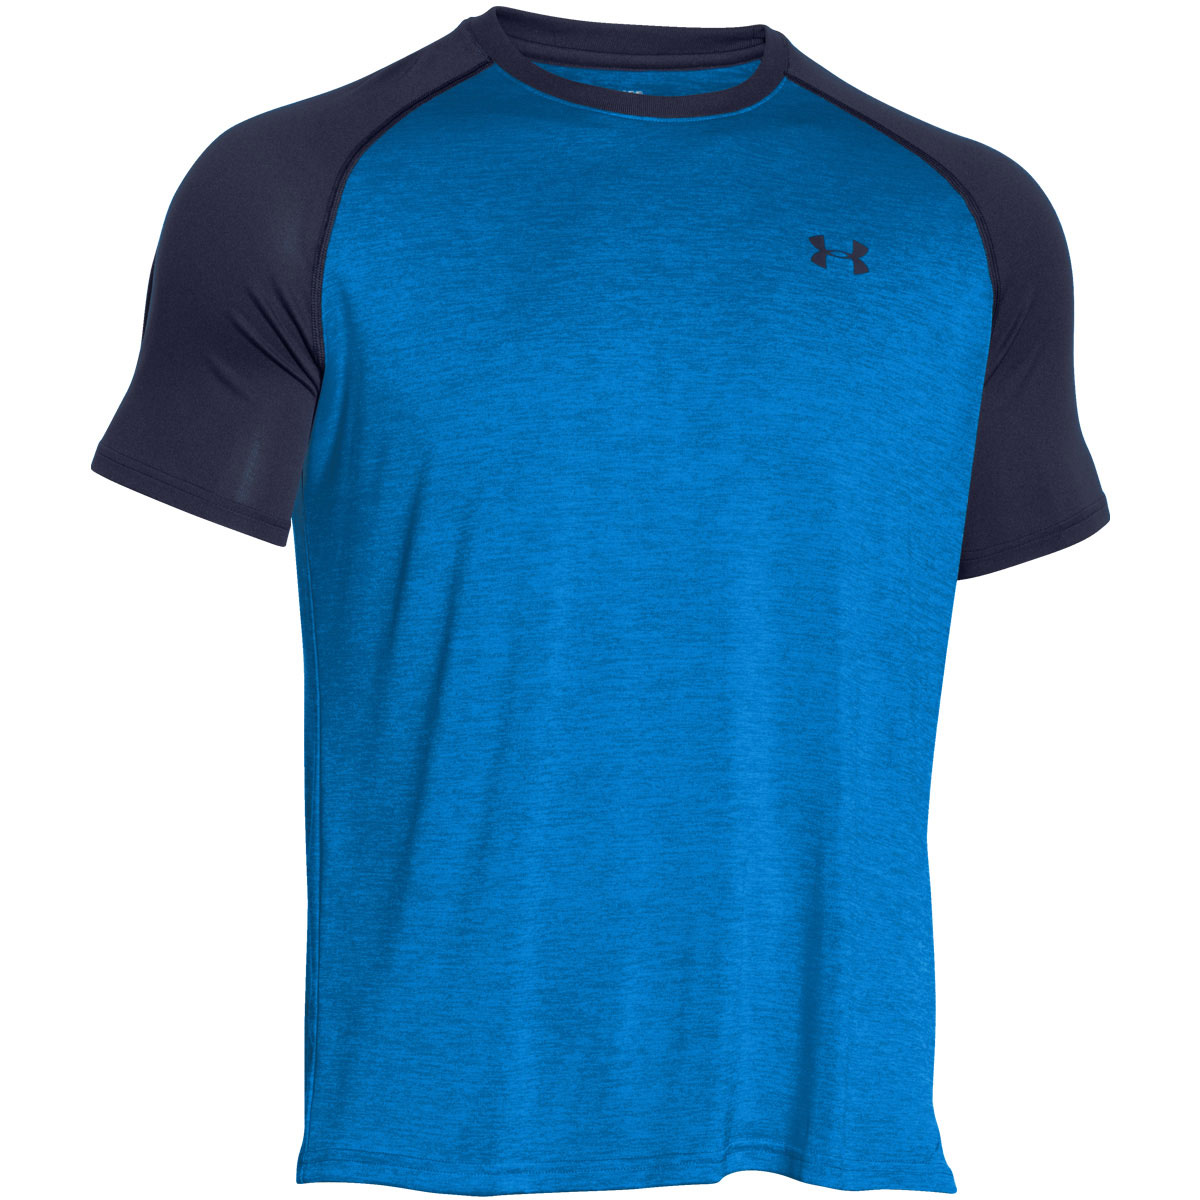 Under armour 2015 mens ua tech short sleeve t shirt for Under armour i will shirt